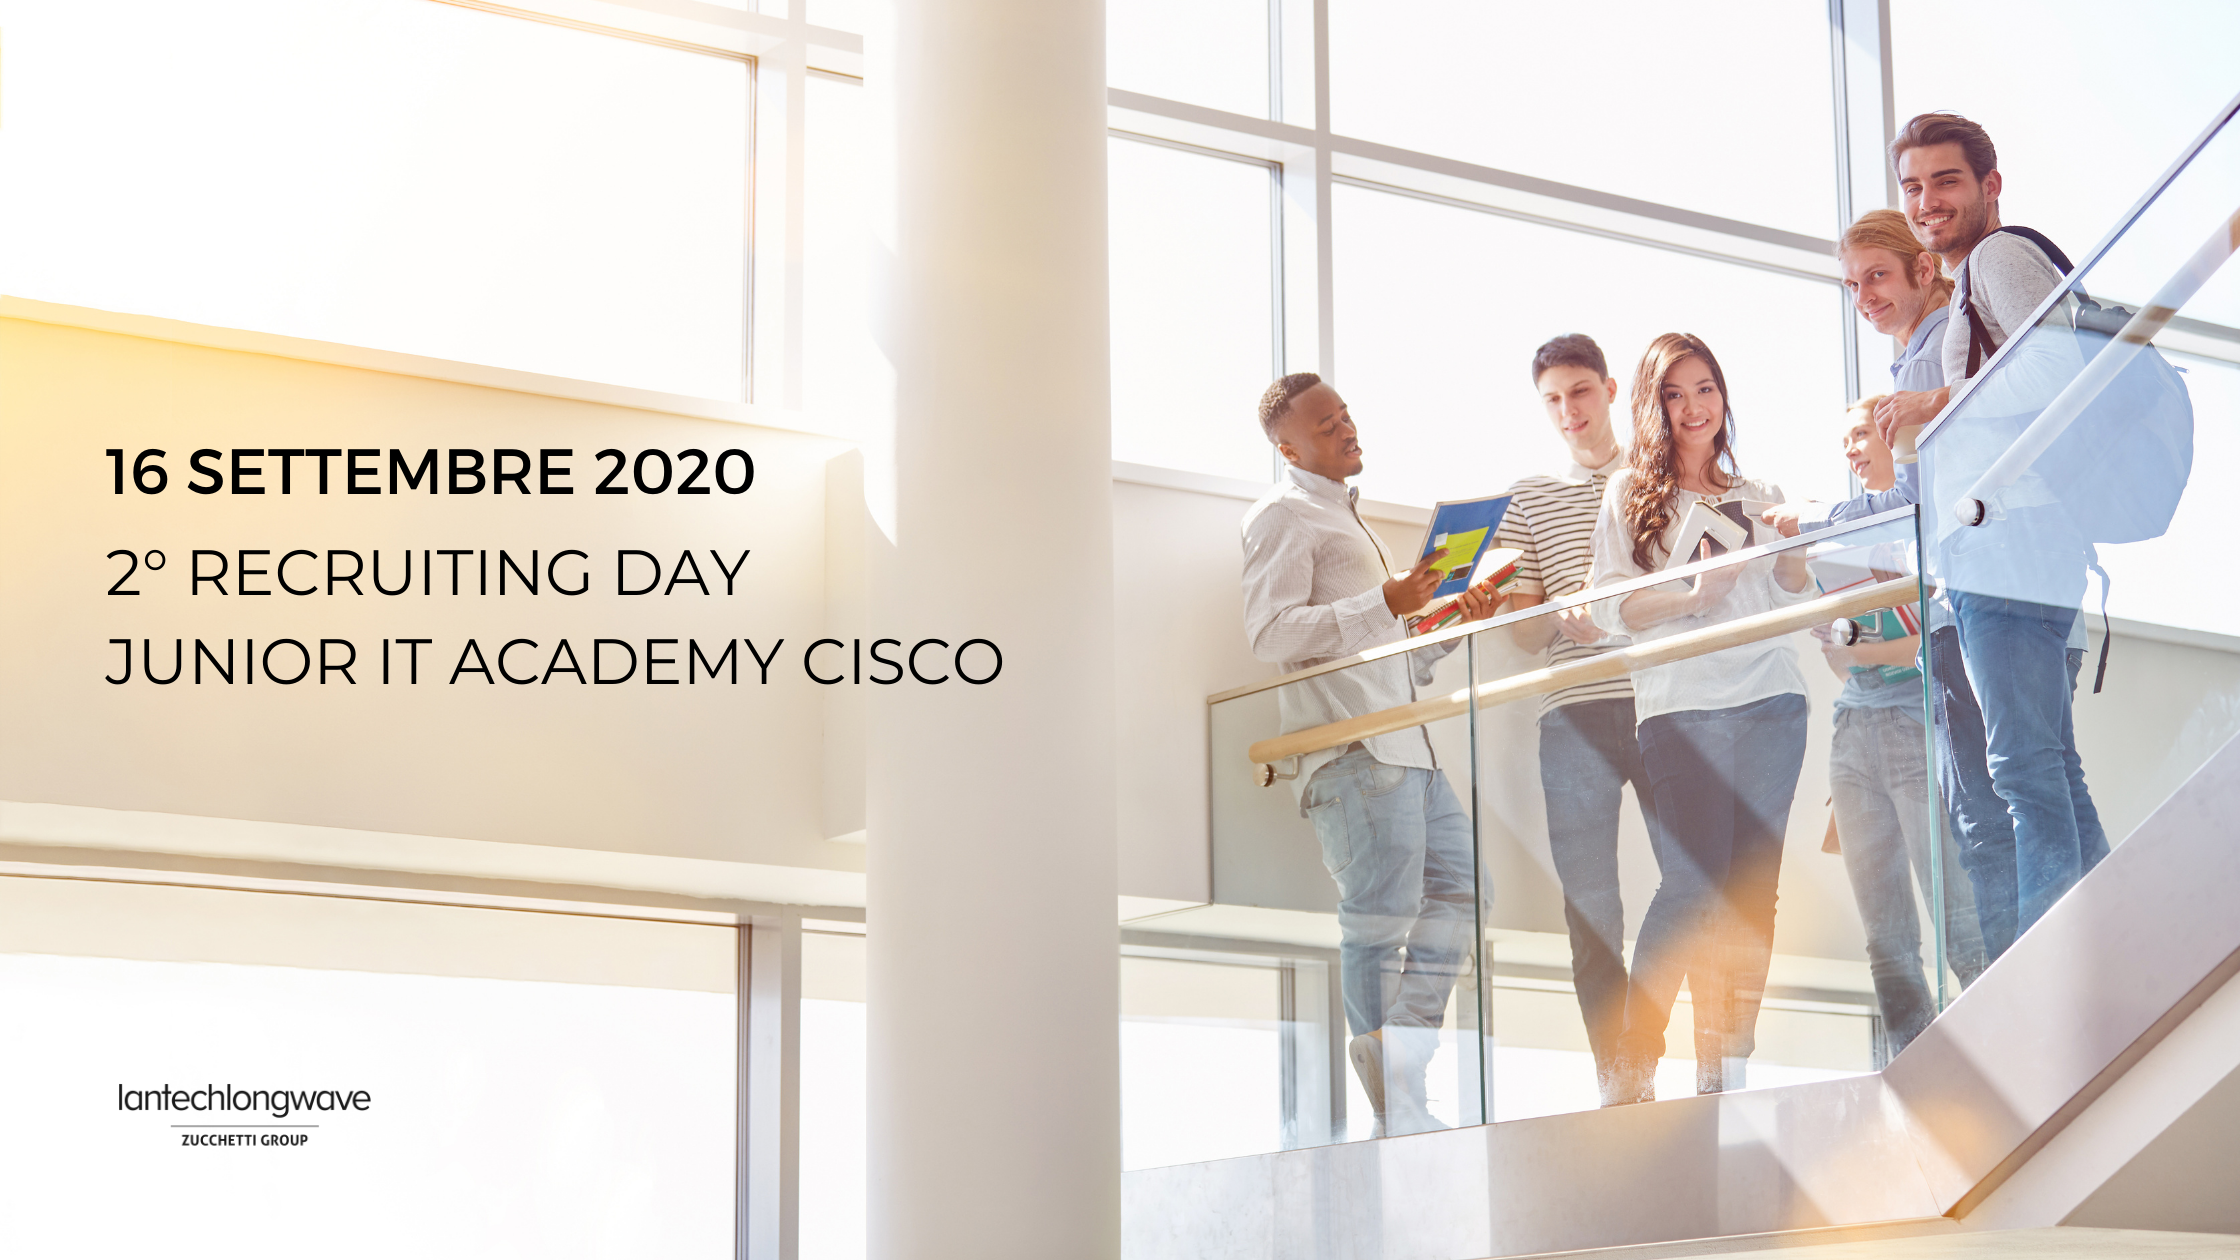 Junior IT Academy Cisco - Recruiting Day